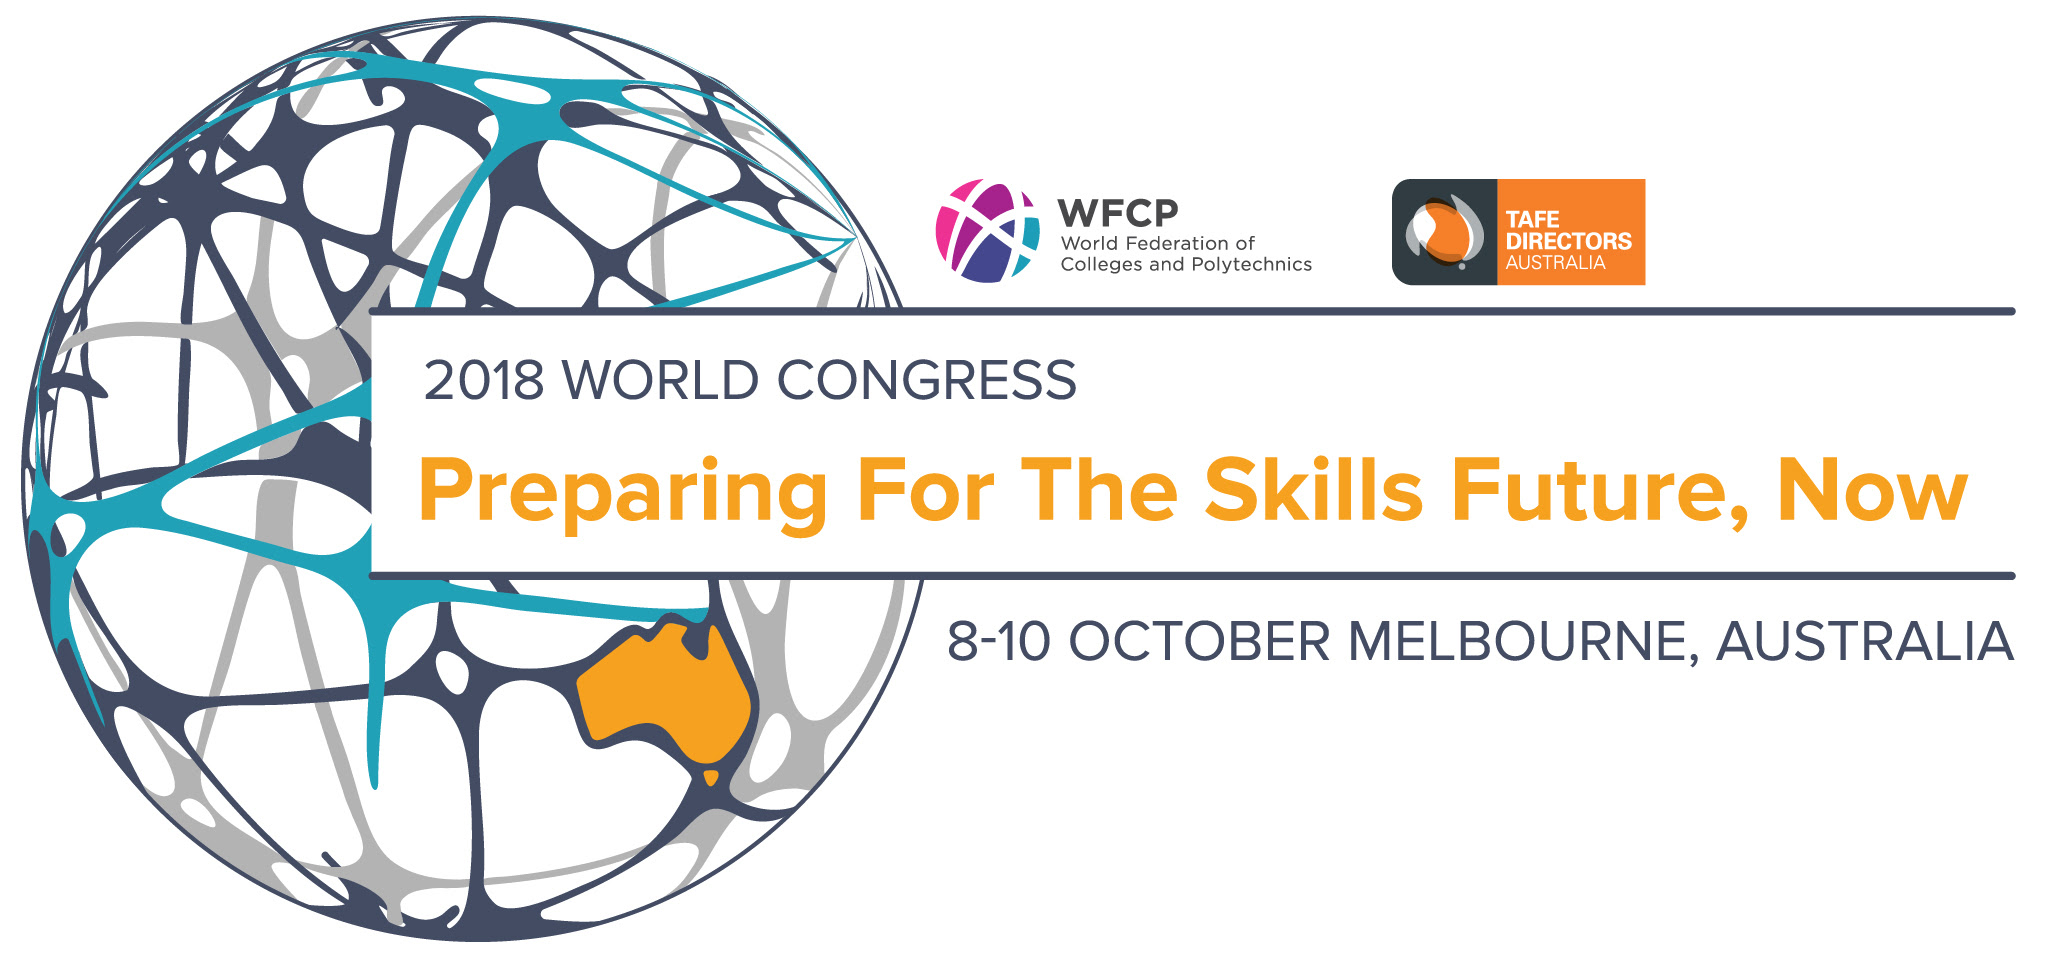 Exhibition booths and sponsorship available at WFCP 2018 World Congress Melbourne 2018